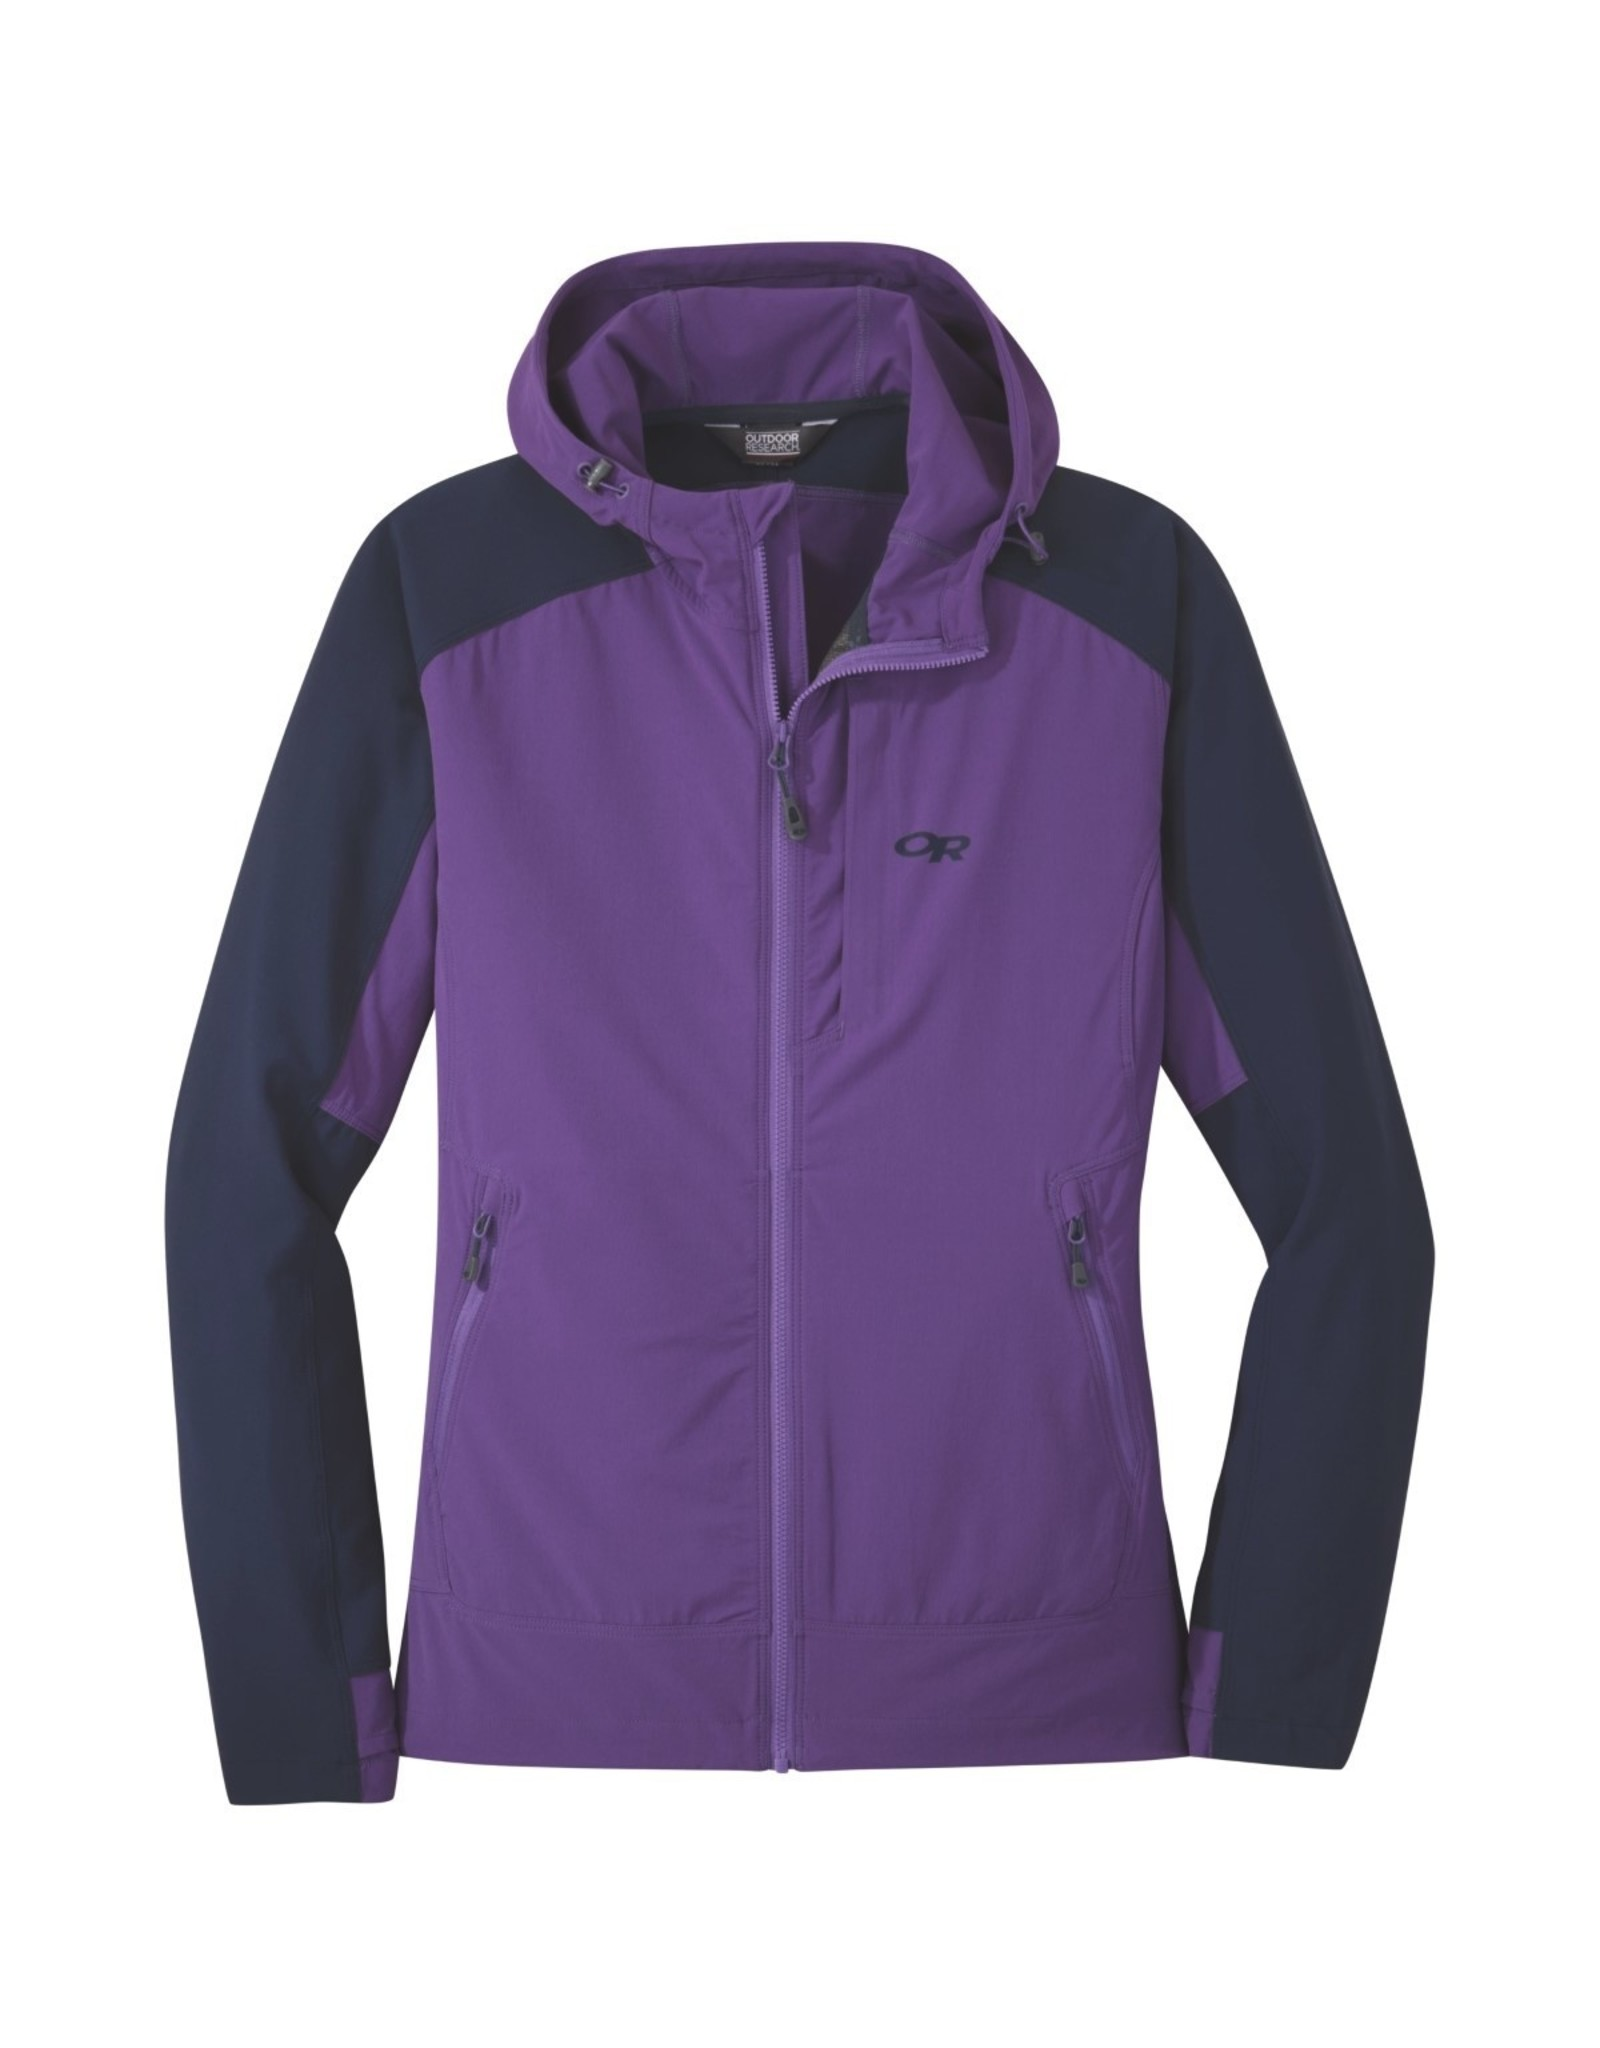 Outdoor Research Outdoor Research Women's Ferrosi Hooded Jacket